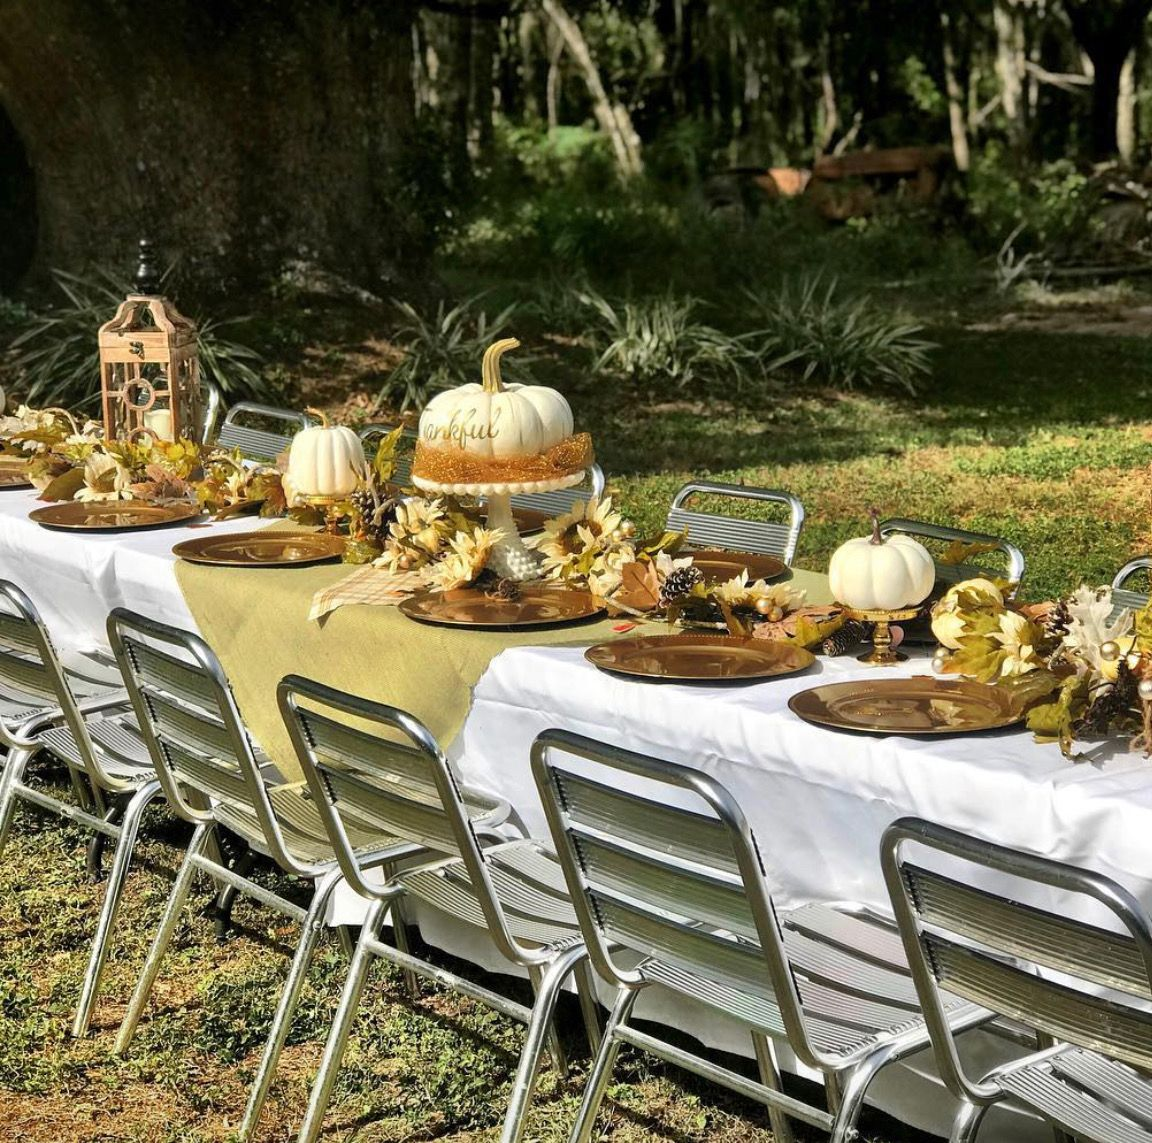 Pin by Beth Hill on Thanksgiving Dinner | Outdoor ...